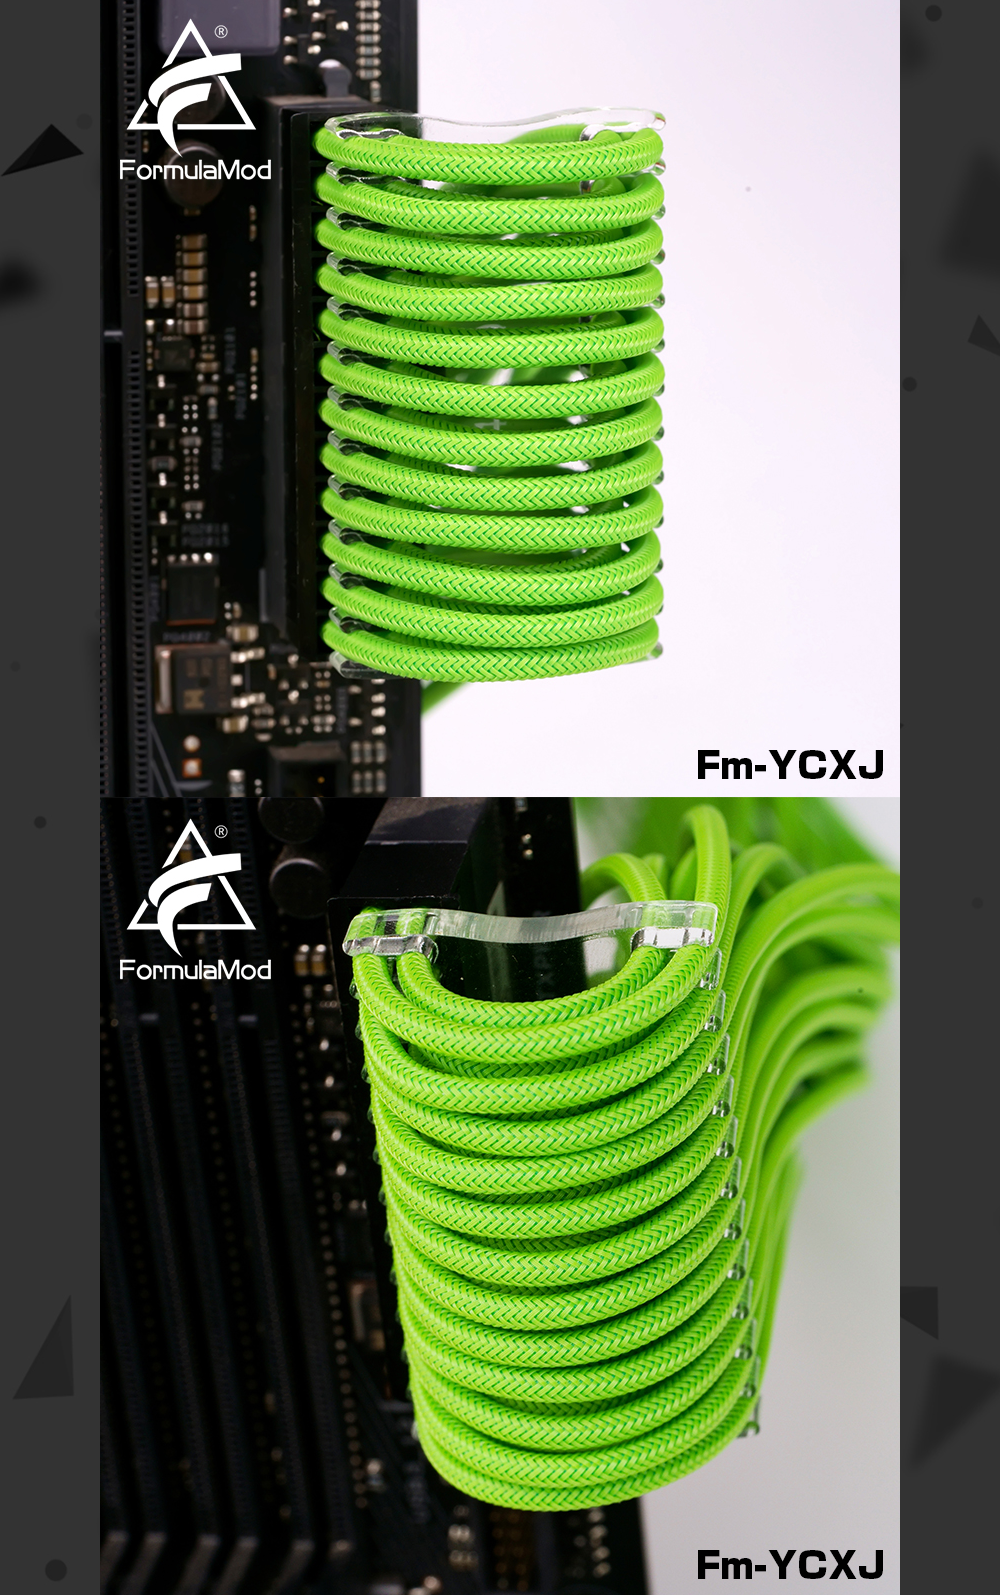 FormulaMod Fm-YCXJ Extend Type Cable Comb For 180° Bending Easy To Fix And Bend Cable Management Tools